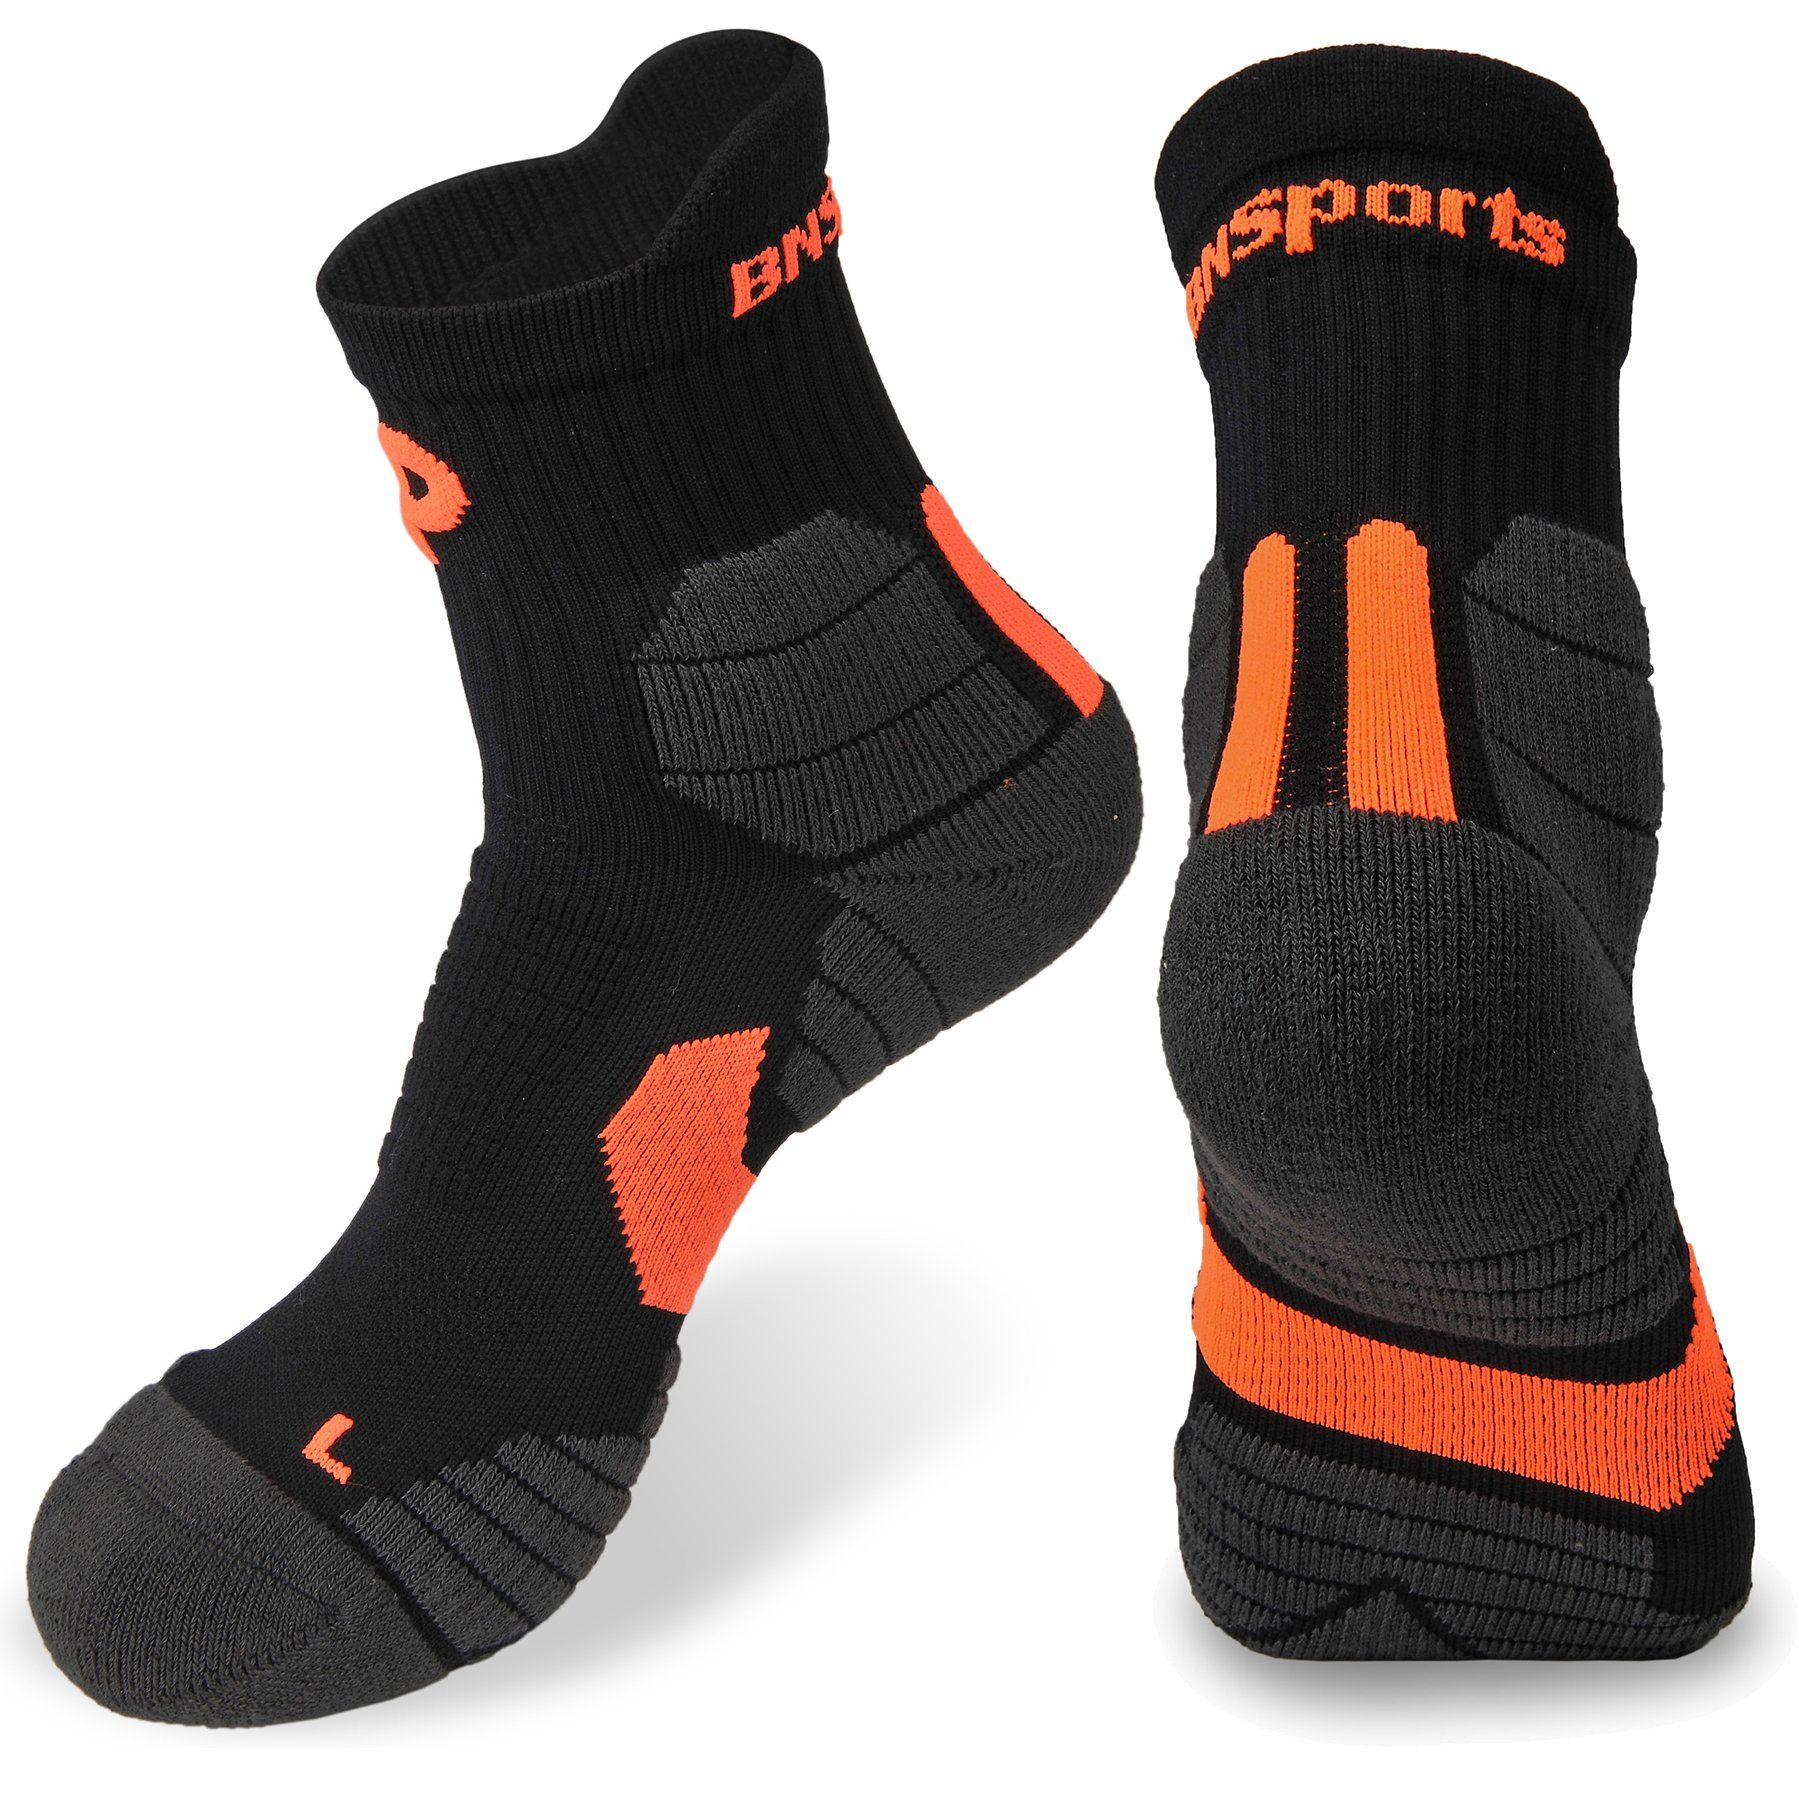 dbde9ae0817ca Men s Quarter Socks in Coolmax Material Hand Linded Seamless Toe for Sports  Hiking Walking Running (